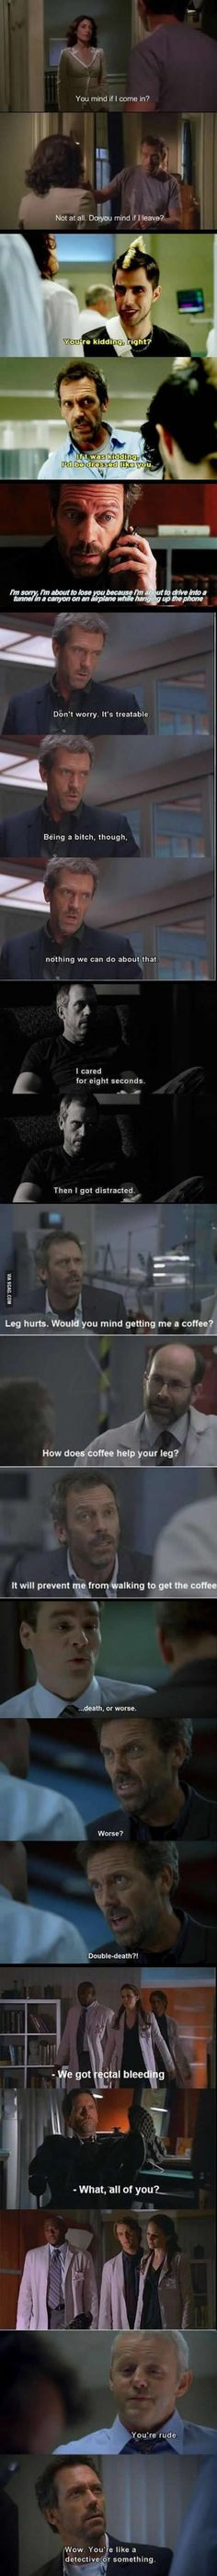 Just House things...